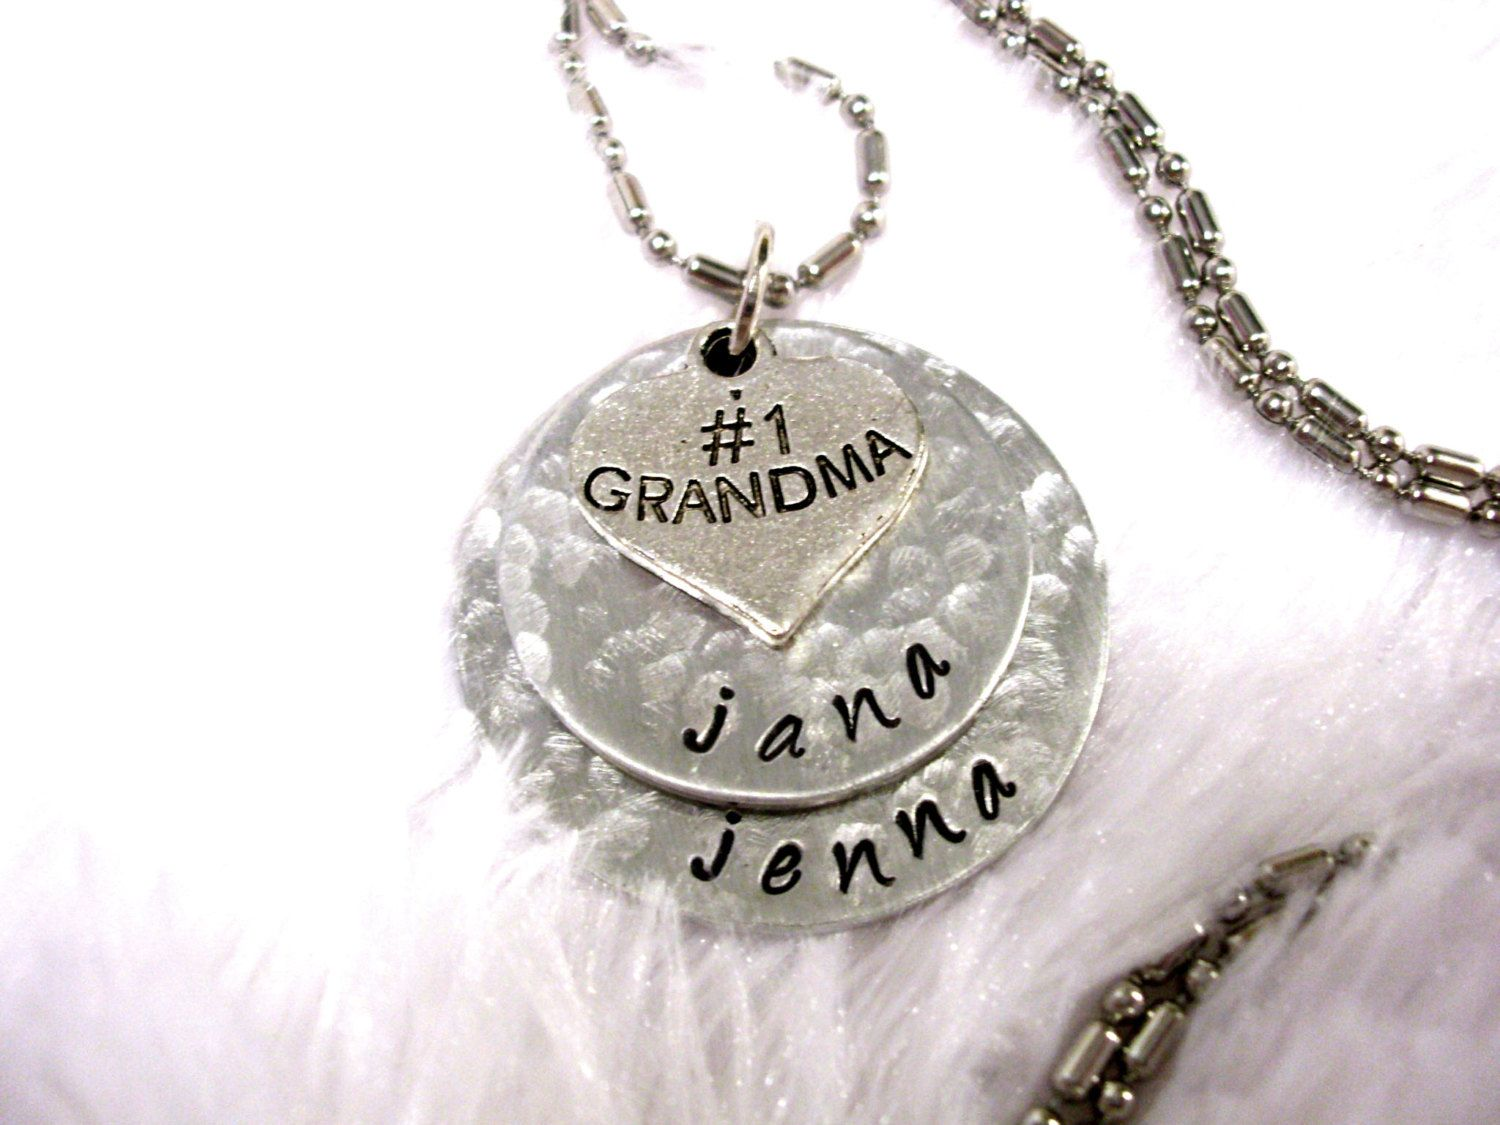 grandma necklace personalized jewelry hand stamped by charmaccents